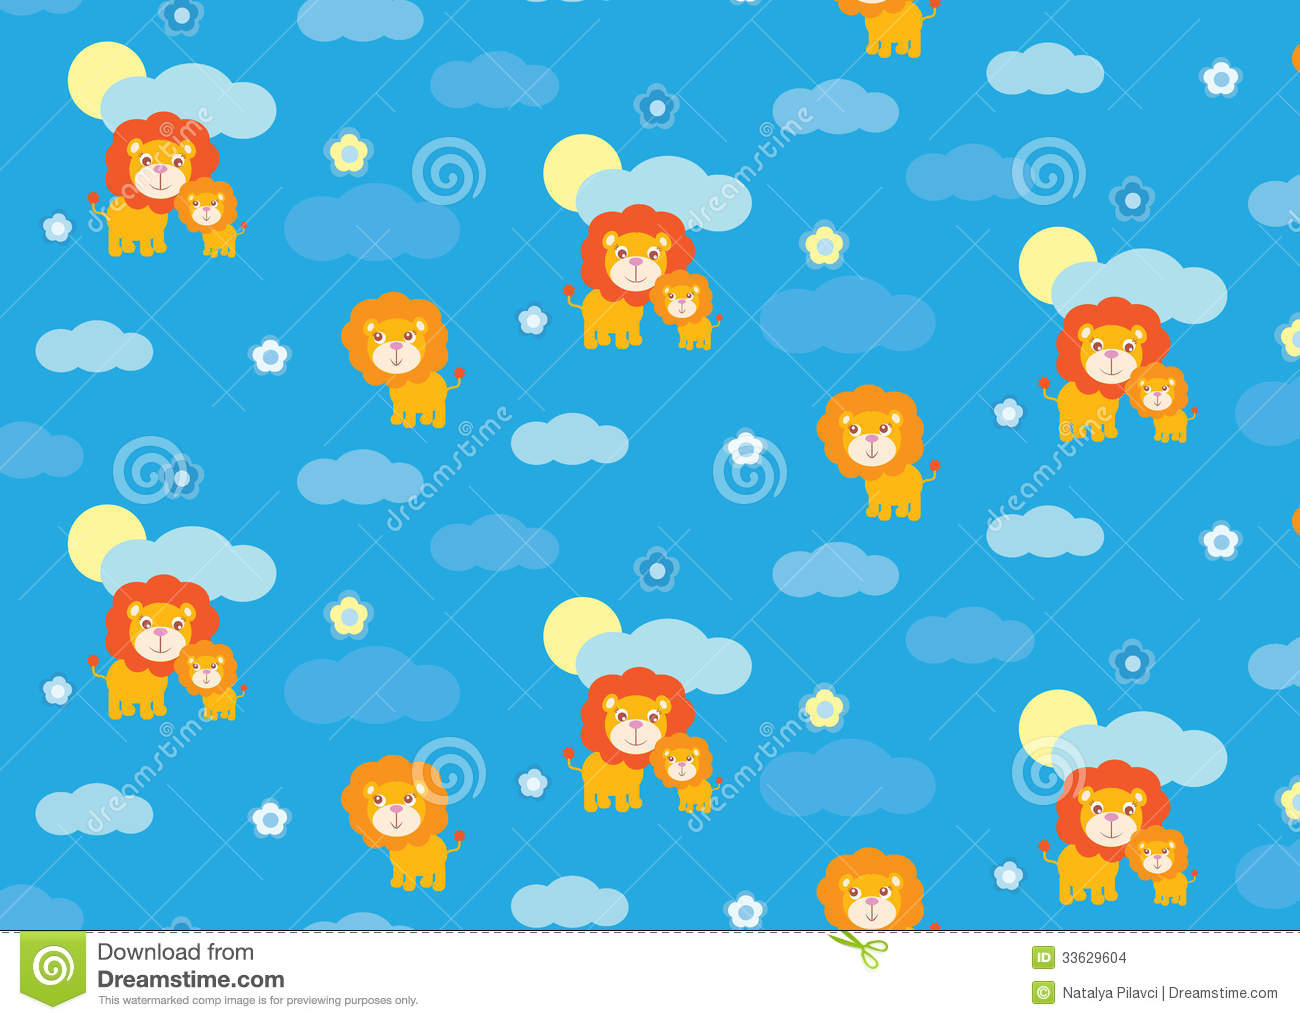 Baby Lion Seamless Pattern Stock Images - Image: 33629604